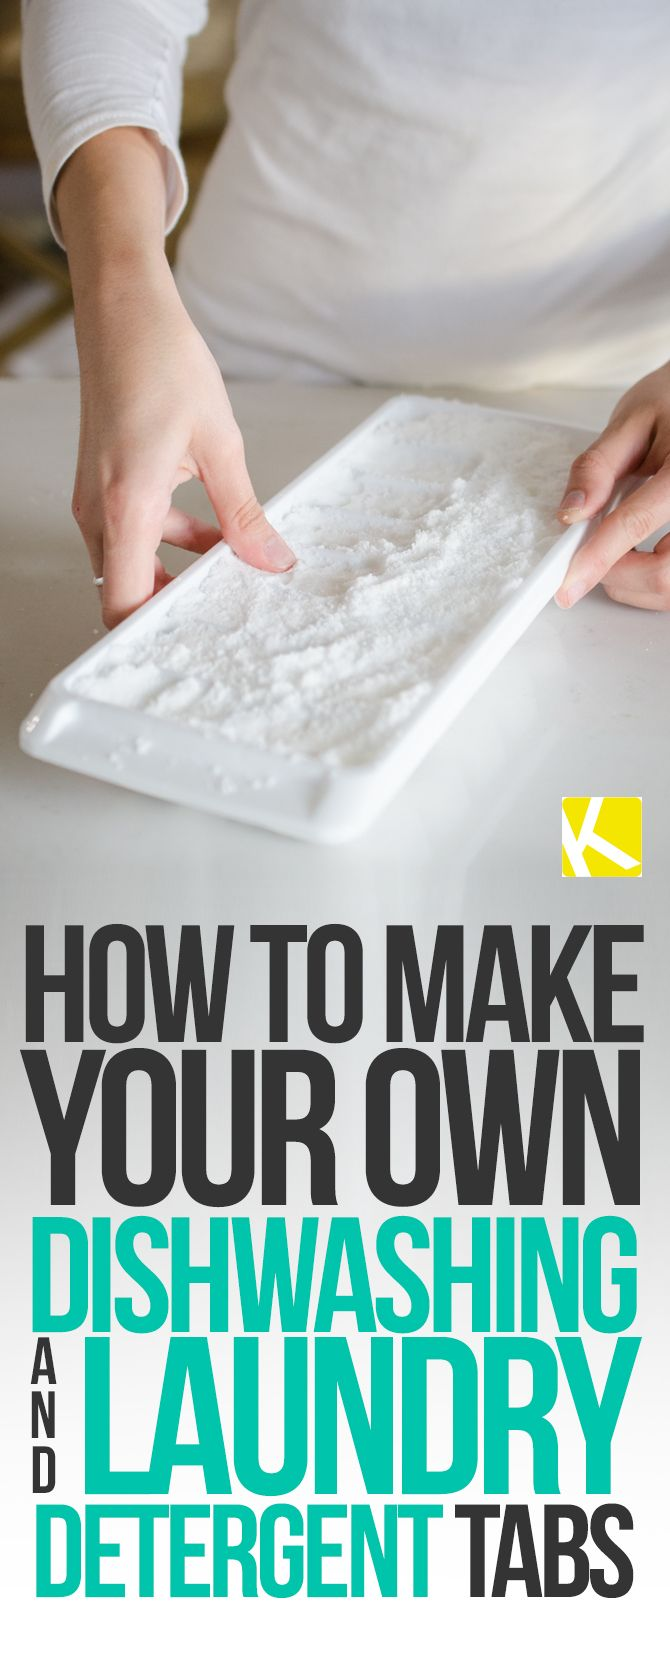 Why buy dishwashing and laundry detergent when you can make your own for half the cost?! It's super easy too. Here are two of...